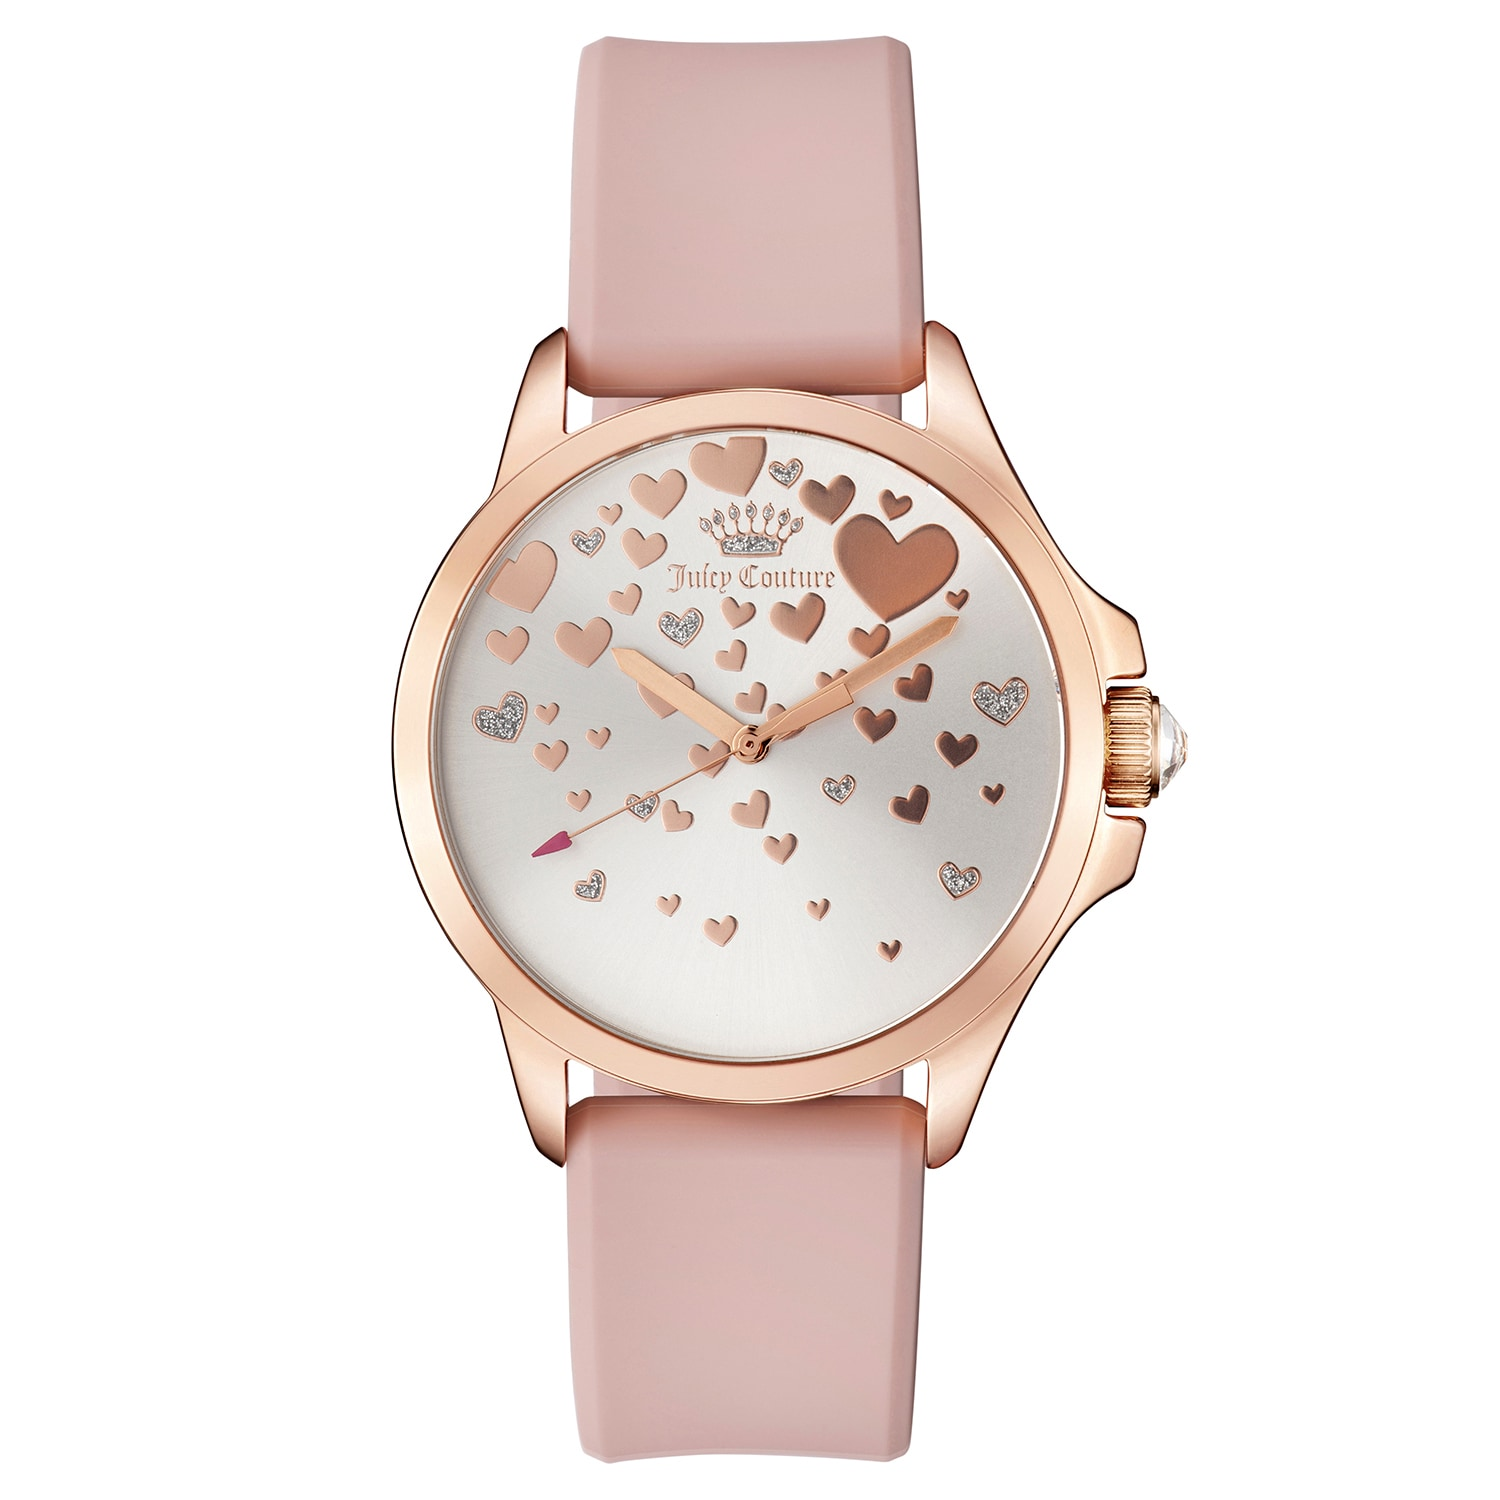 Juicy Couture Women's 1901450 Goldplated Watch with Pink ...